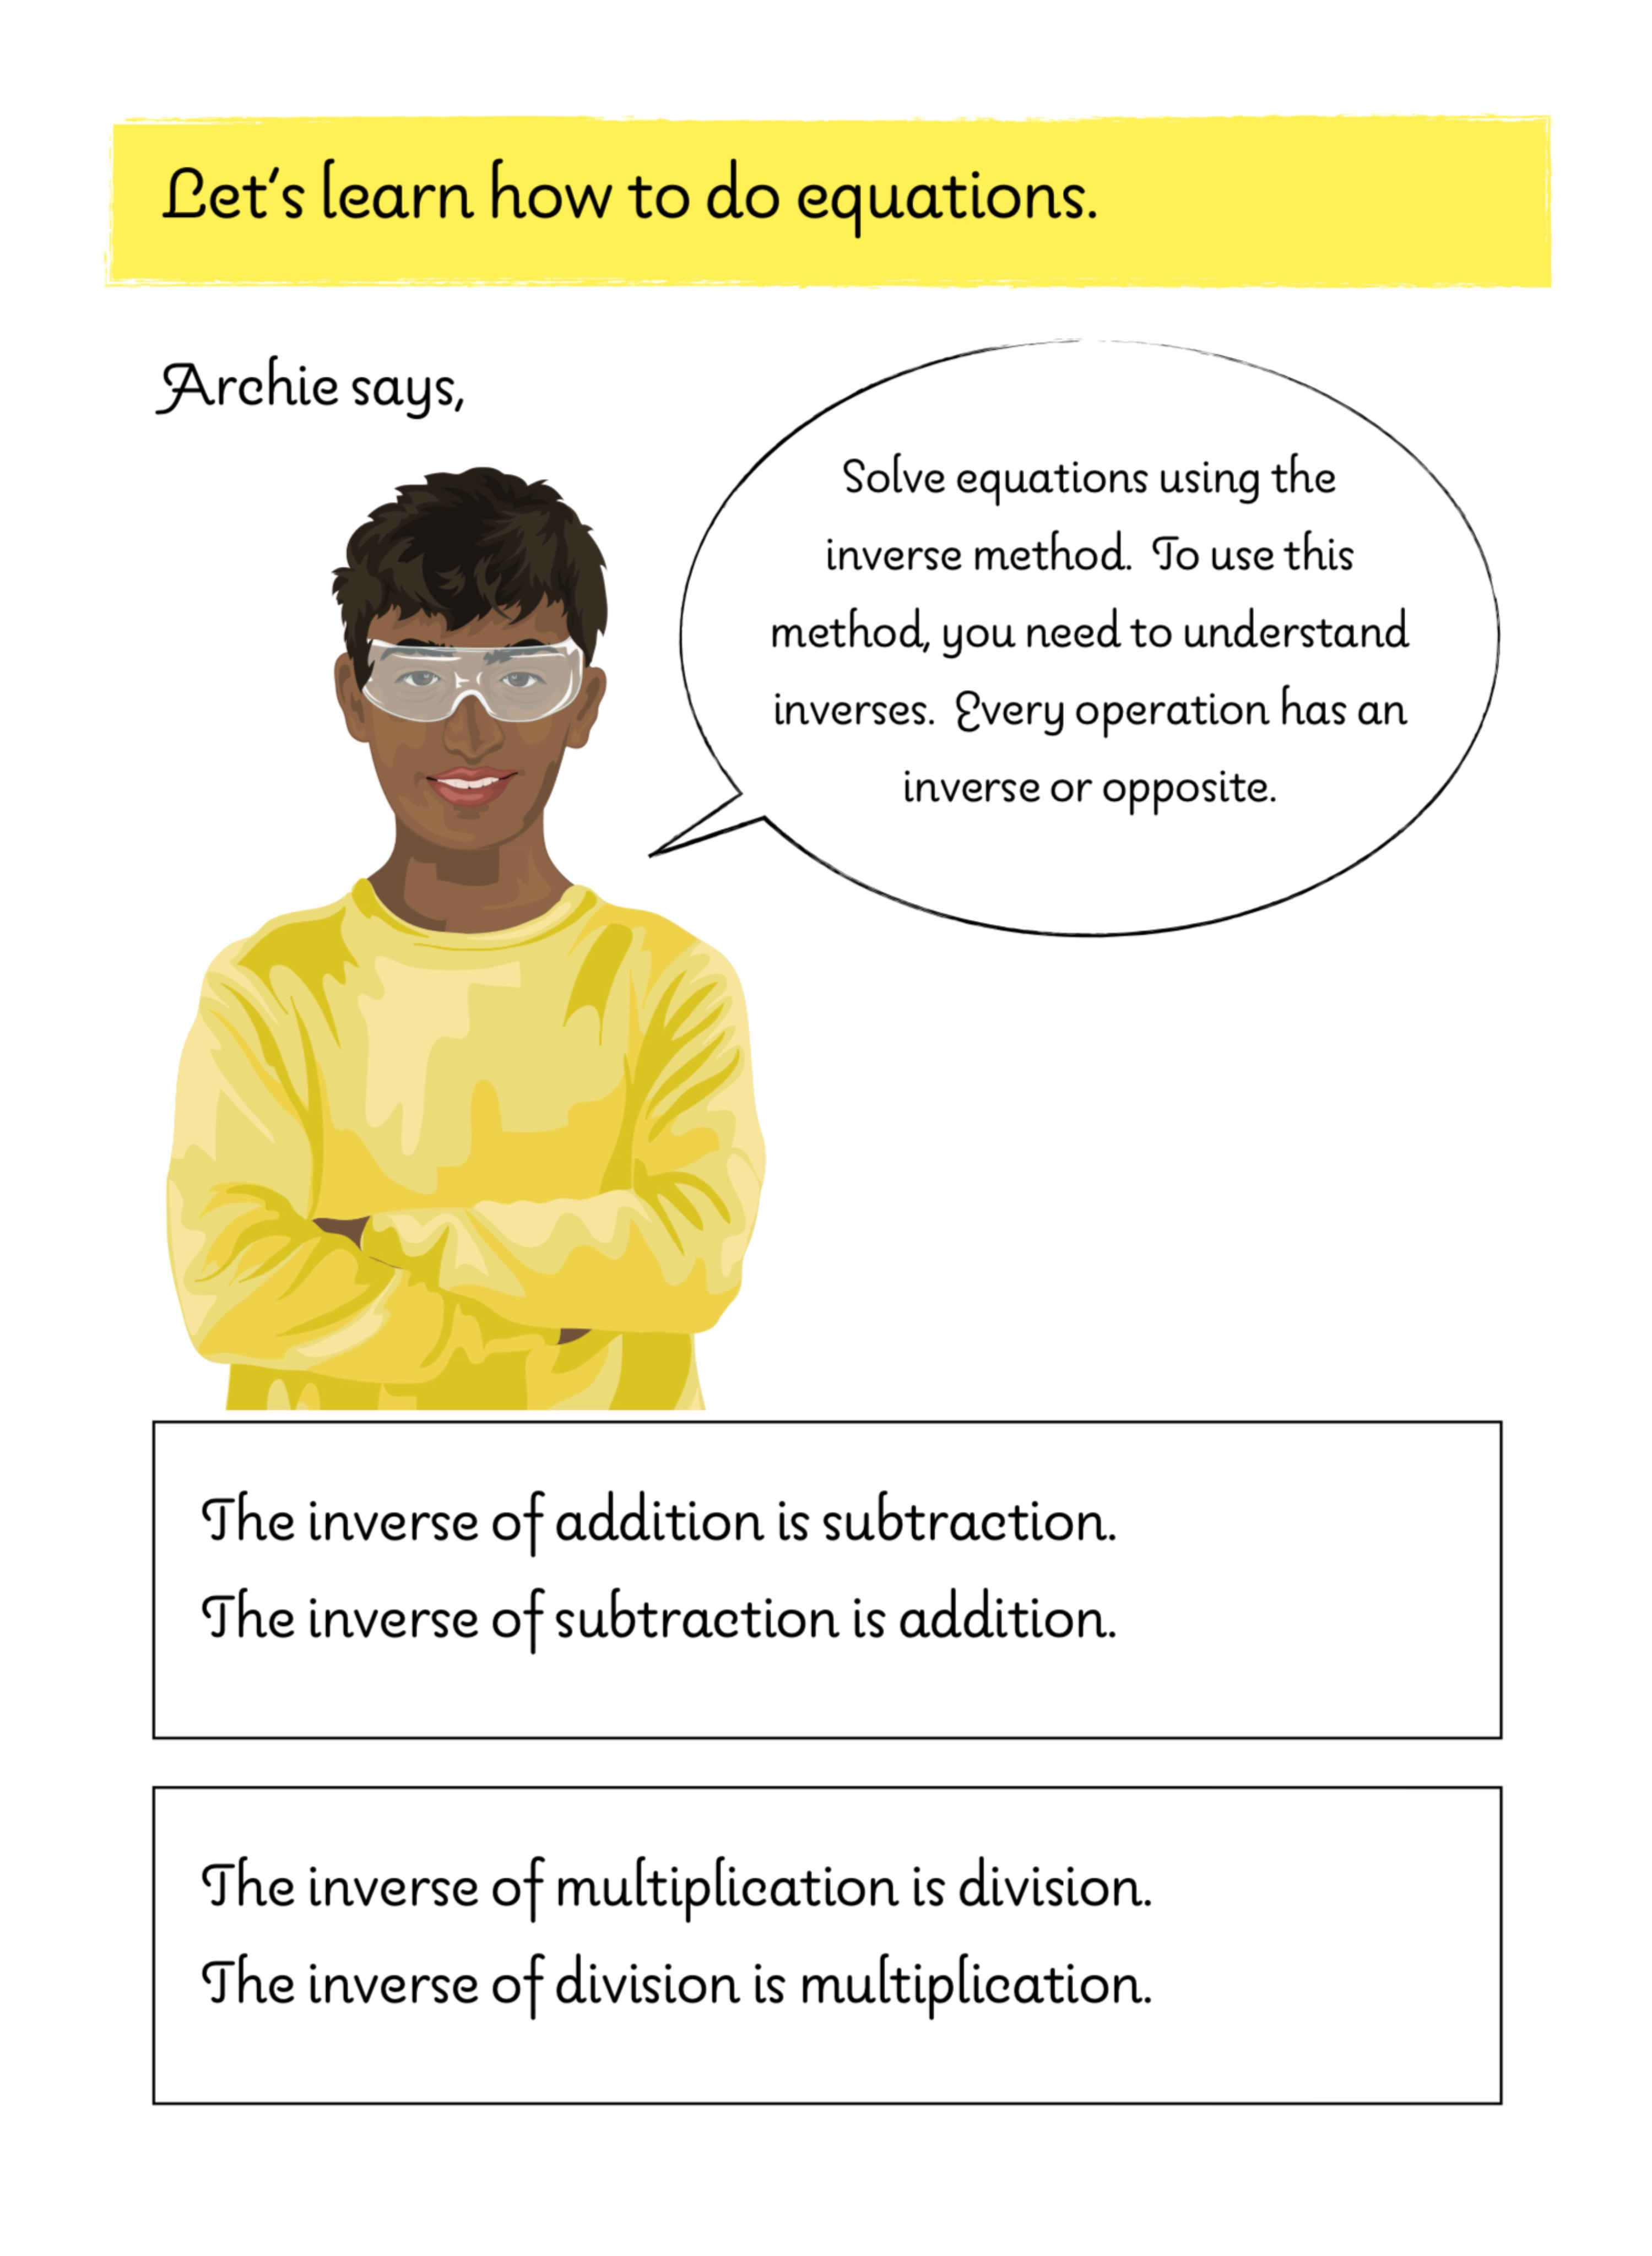 Basic Algebra Practice Questions With Answers - Age 9-12